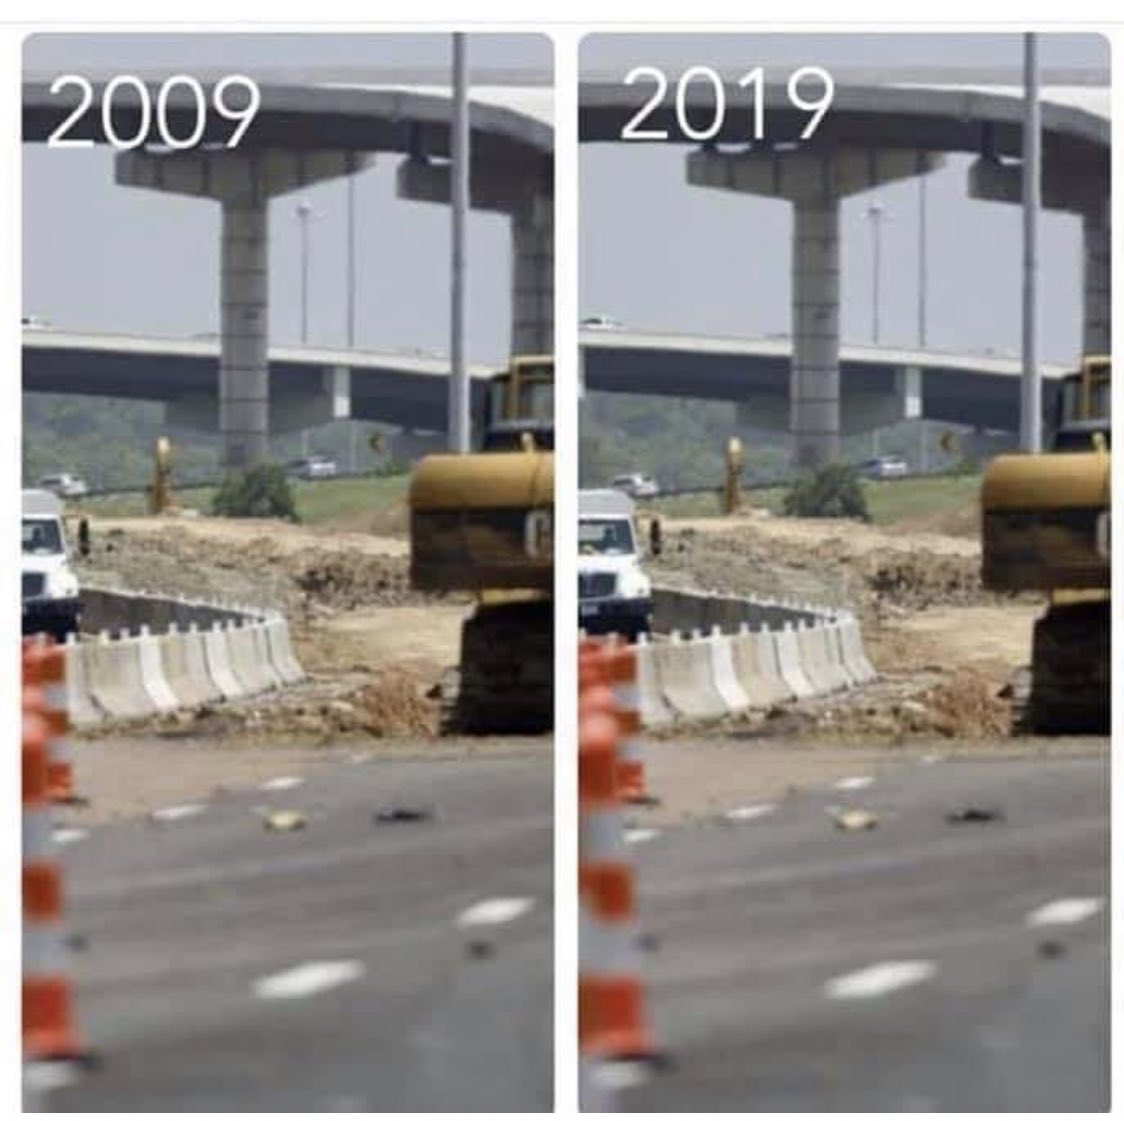 The Highways in Texas 10 Year Challenge